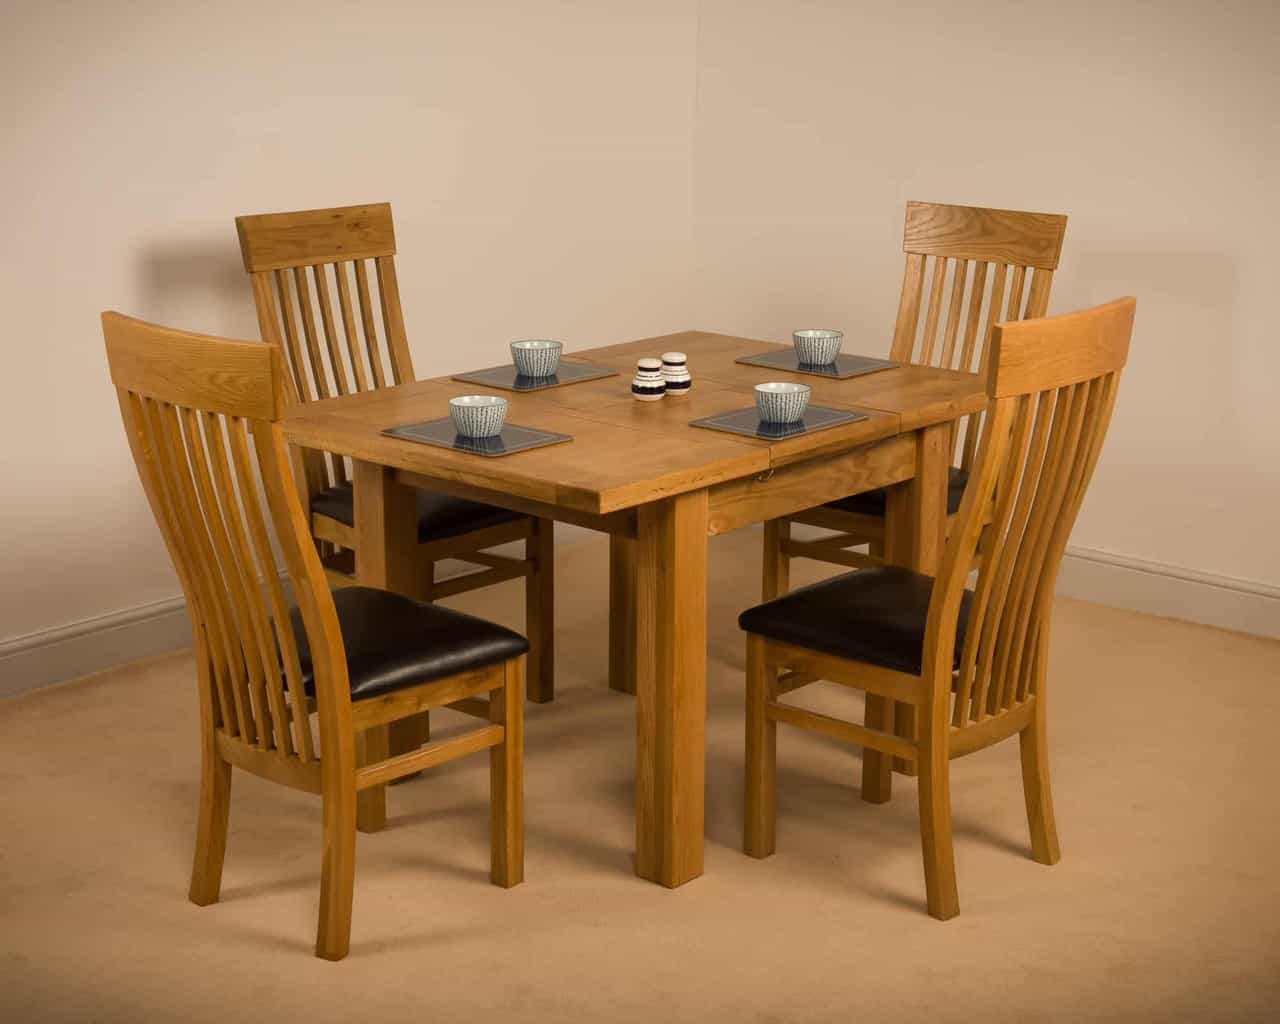 Devon Solid Wood Chunky Oak Square Small Extending Dining Table With 4 Chairs Msl Furniture